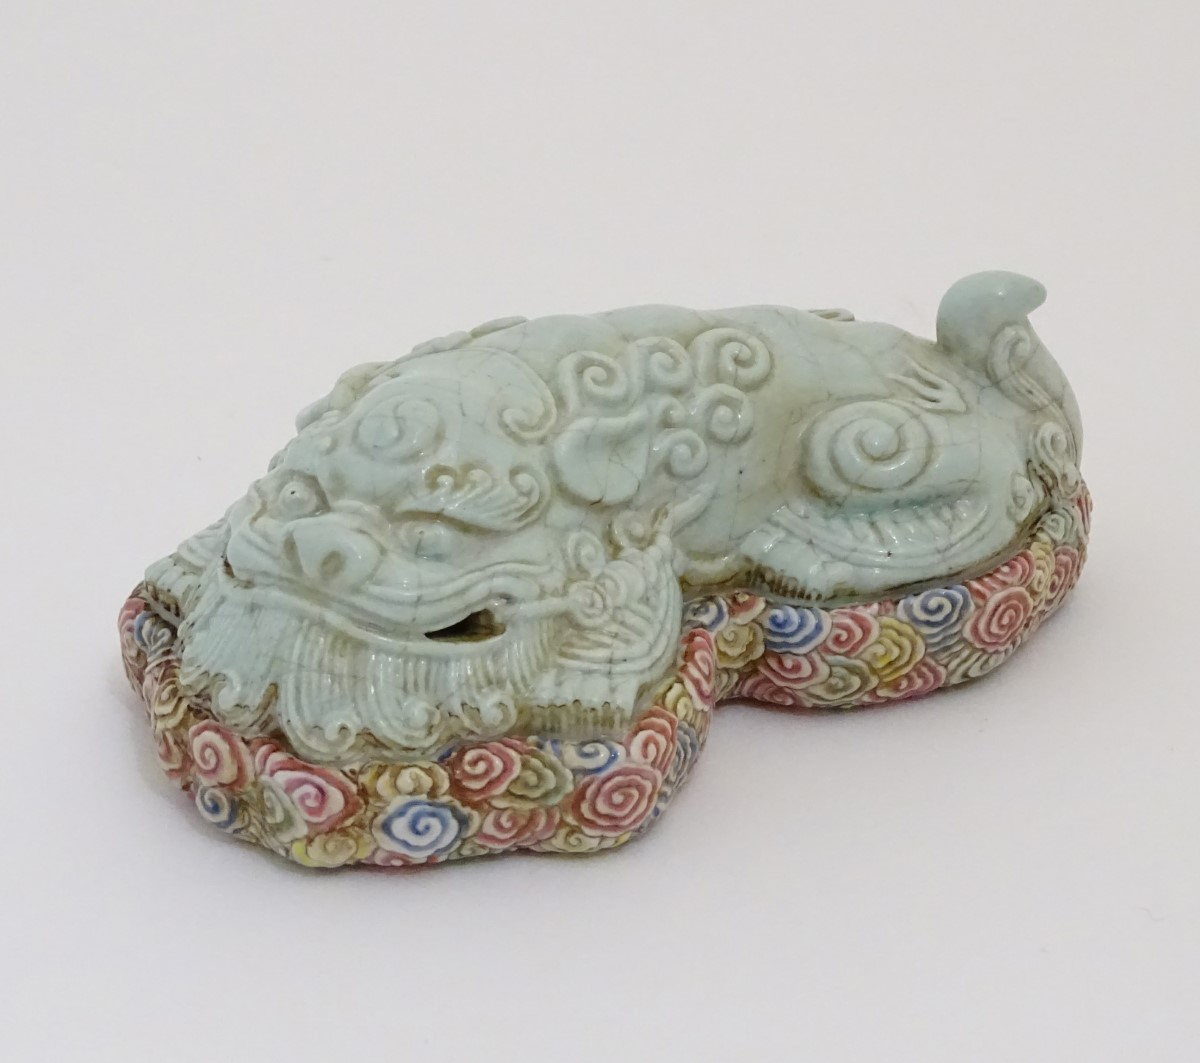 Lot 28 - A recumbent Chinese foo dog with a crackle glaze lying on a bed of stylised clouds.